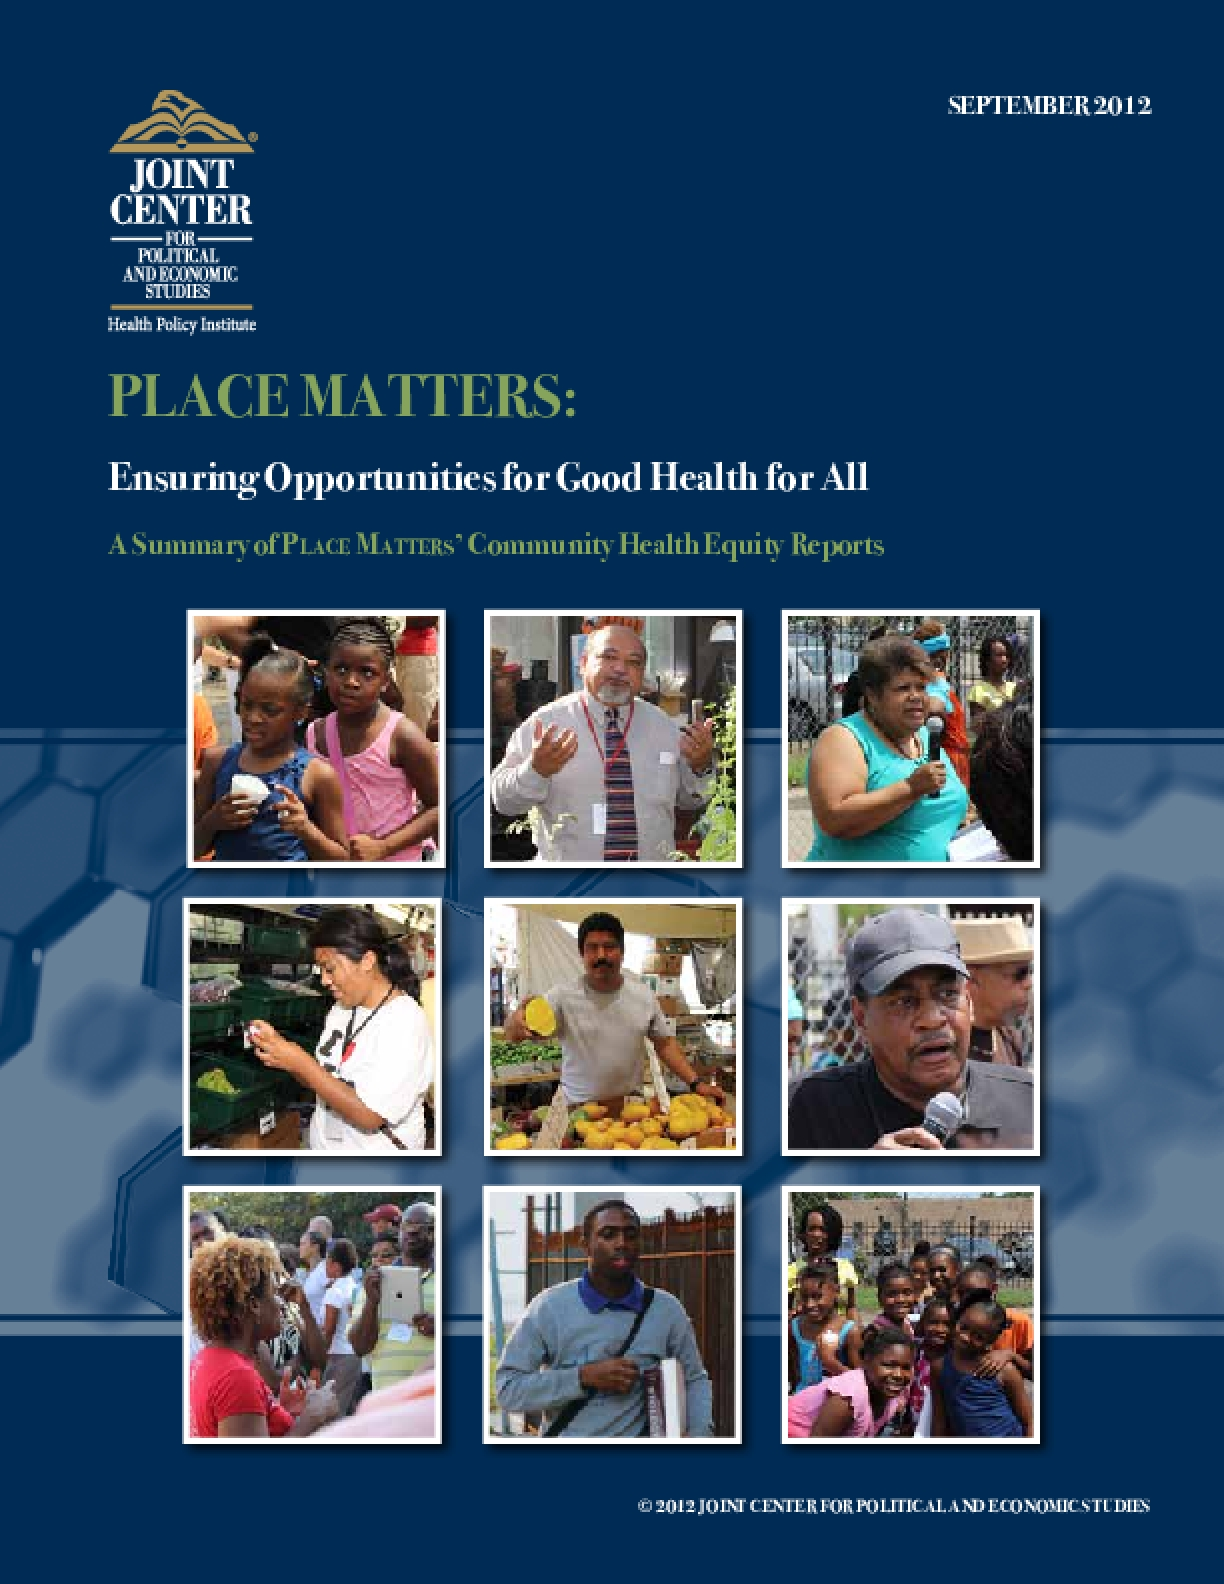 Place Matters: Ensuring Opportunities for Good Health for All, A Summary of Place Matters' Community Health Equity Reports